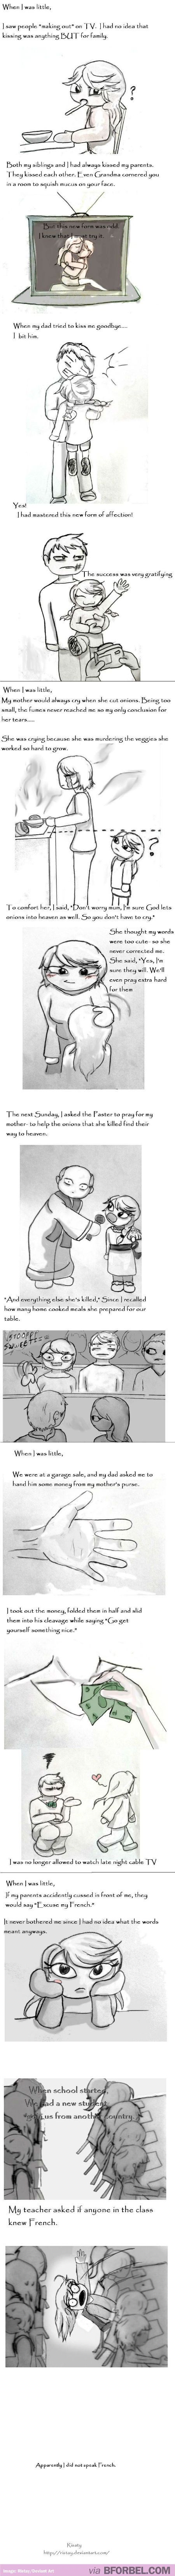 The Embarrassing Moments When I Was Little… I am laughing so hard right now.